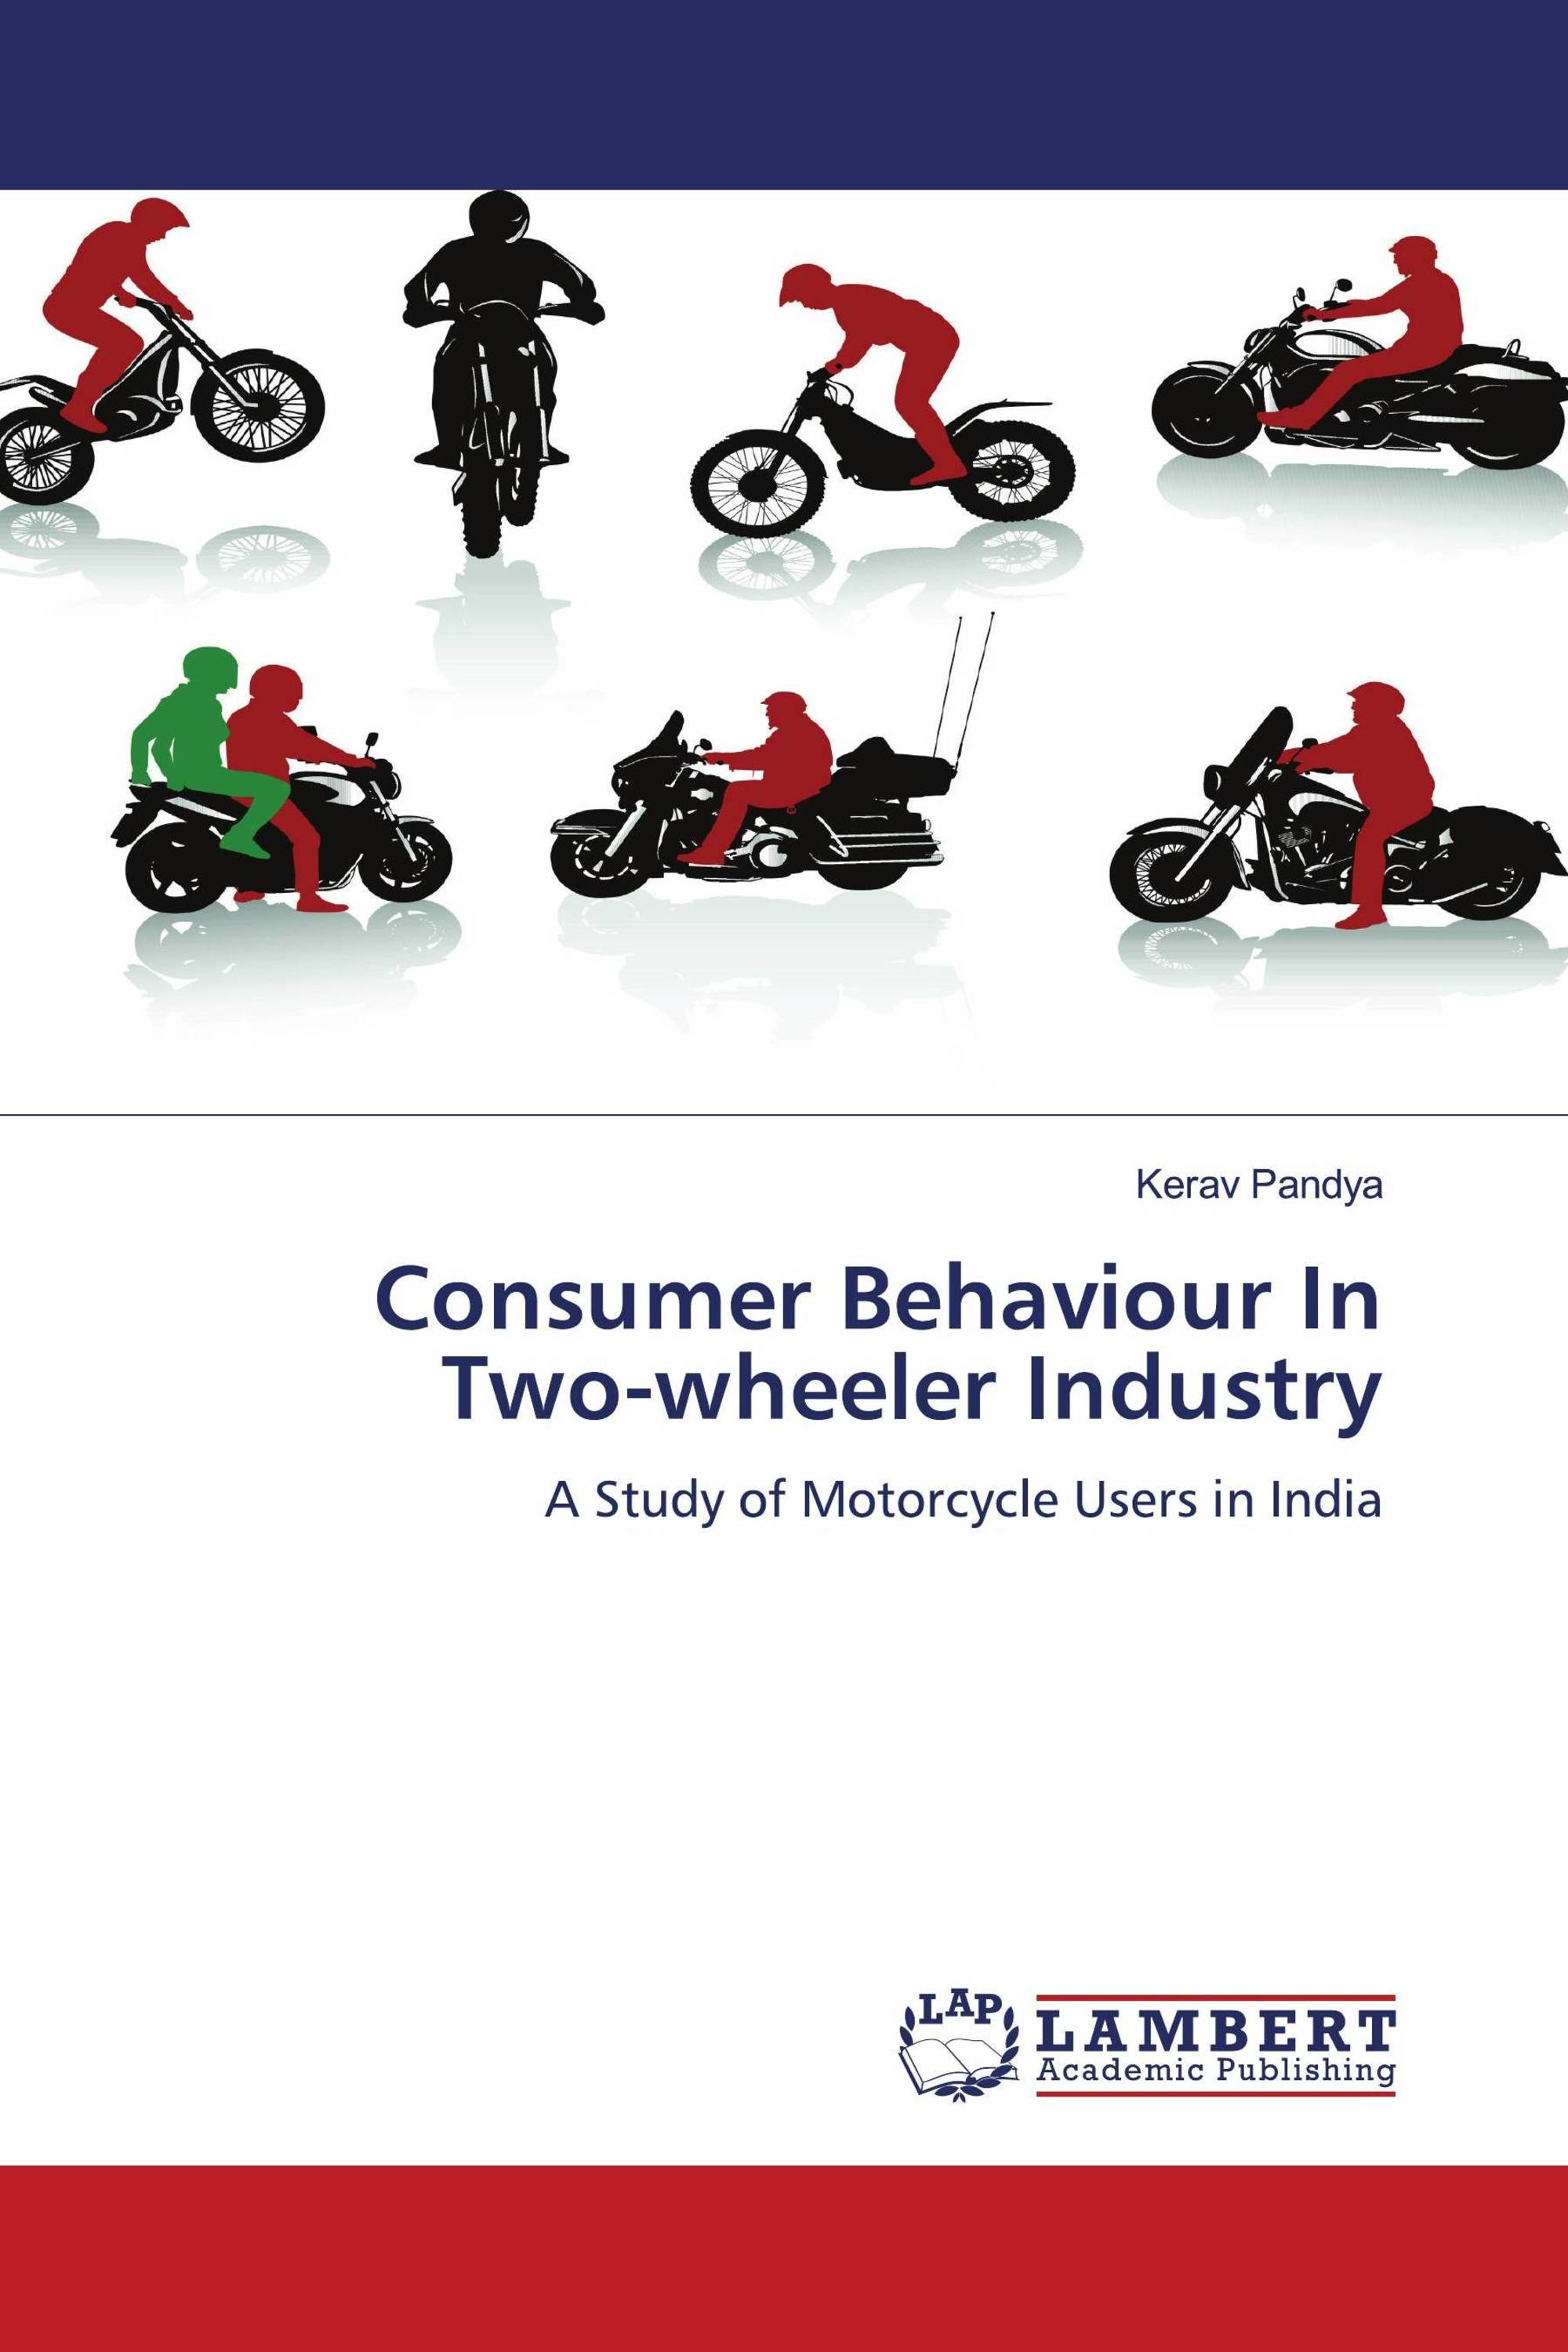 consumer buying behavior on two wheelers The research findings indicate the various characteristics of two wheeler consumer behavior in the ahmednagar city, maharashtra these observations if taken into consideration by the manufacturers will positively influence the sales as it would cater to the needs of the potential two wheeler consumers.